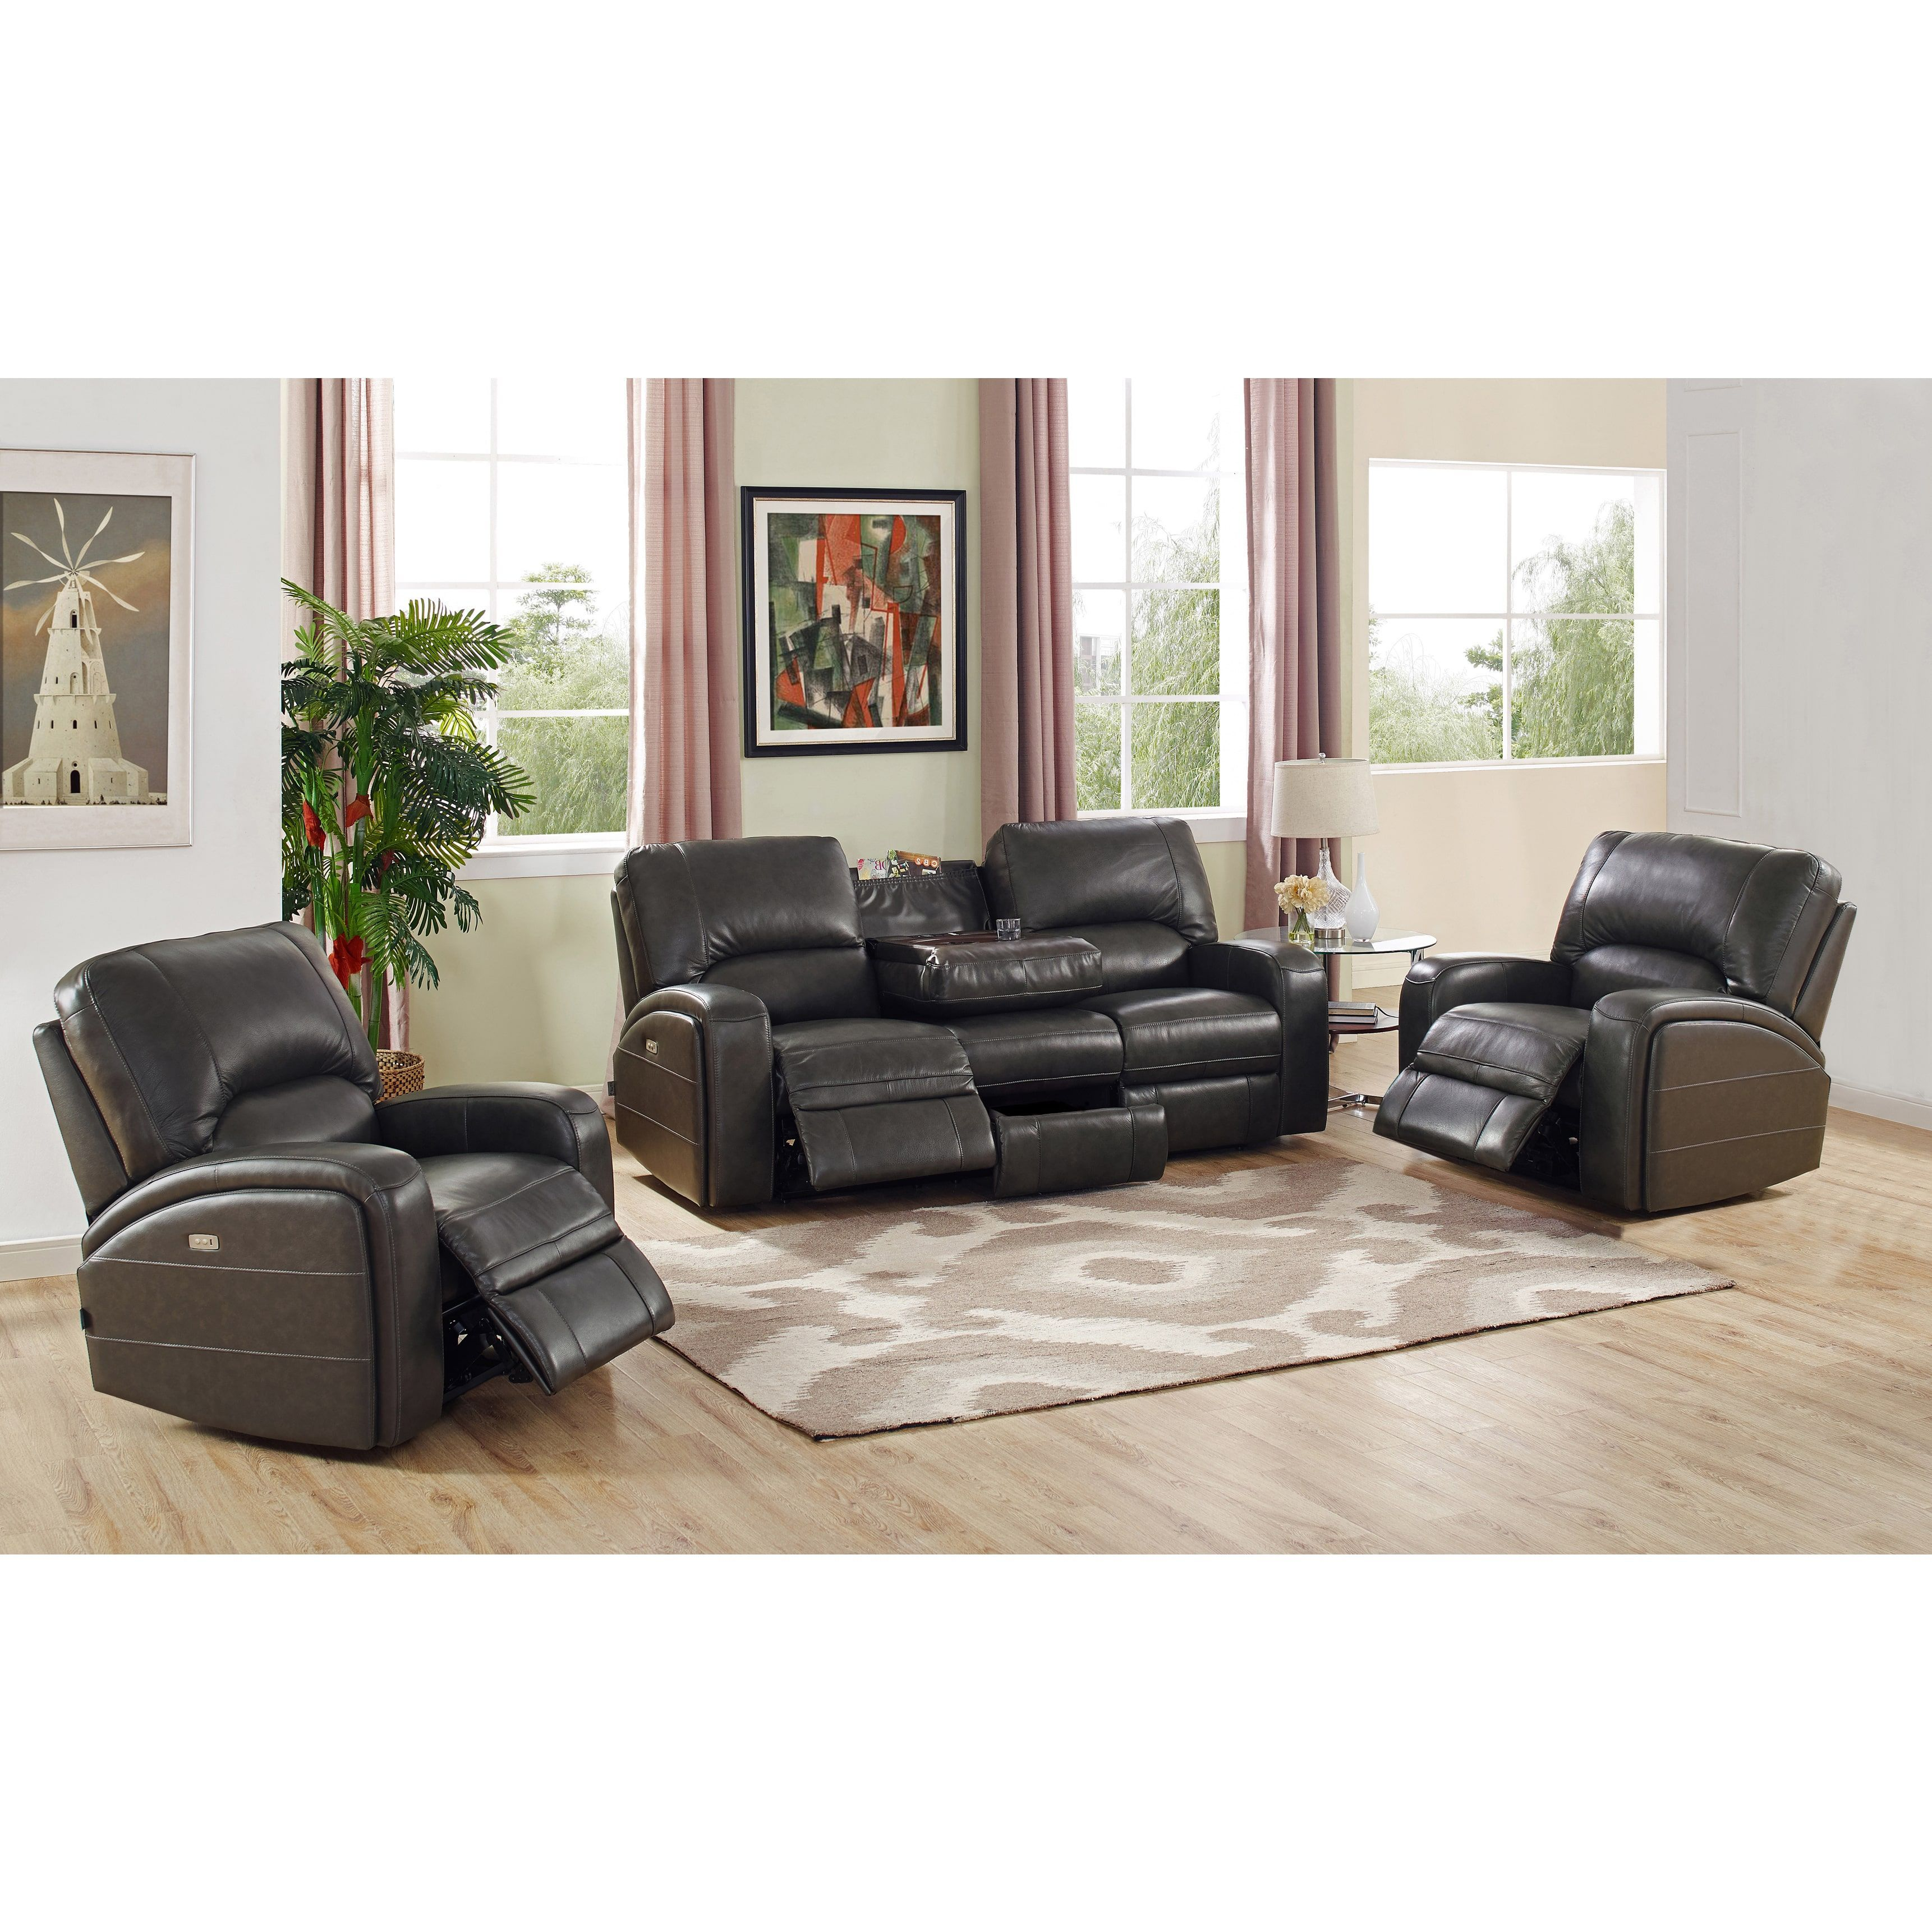 Hydeline by Amax Newcastle Top Grain Leather Power Reclining Sofa